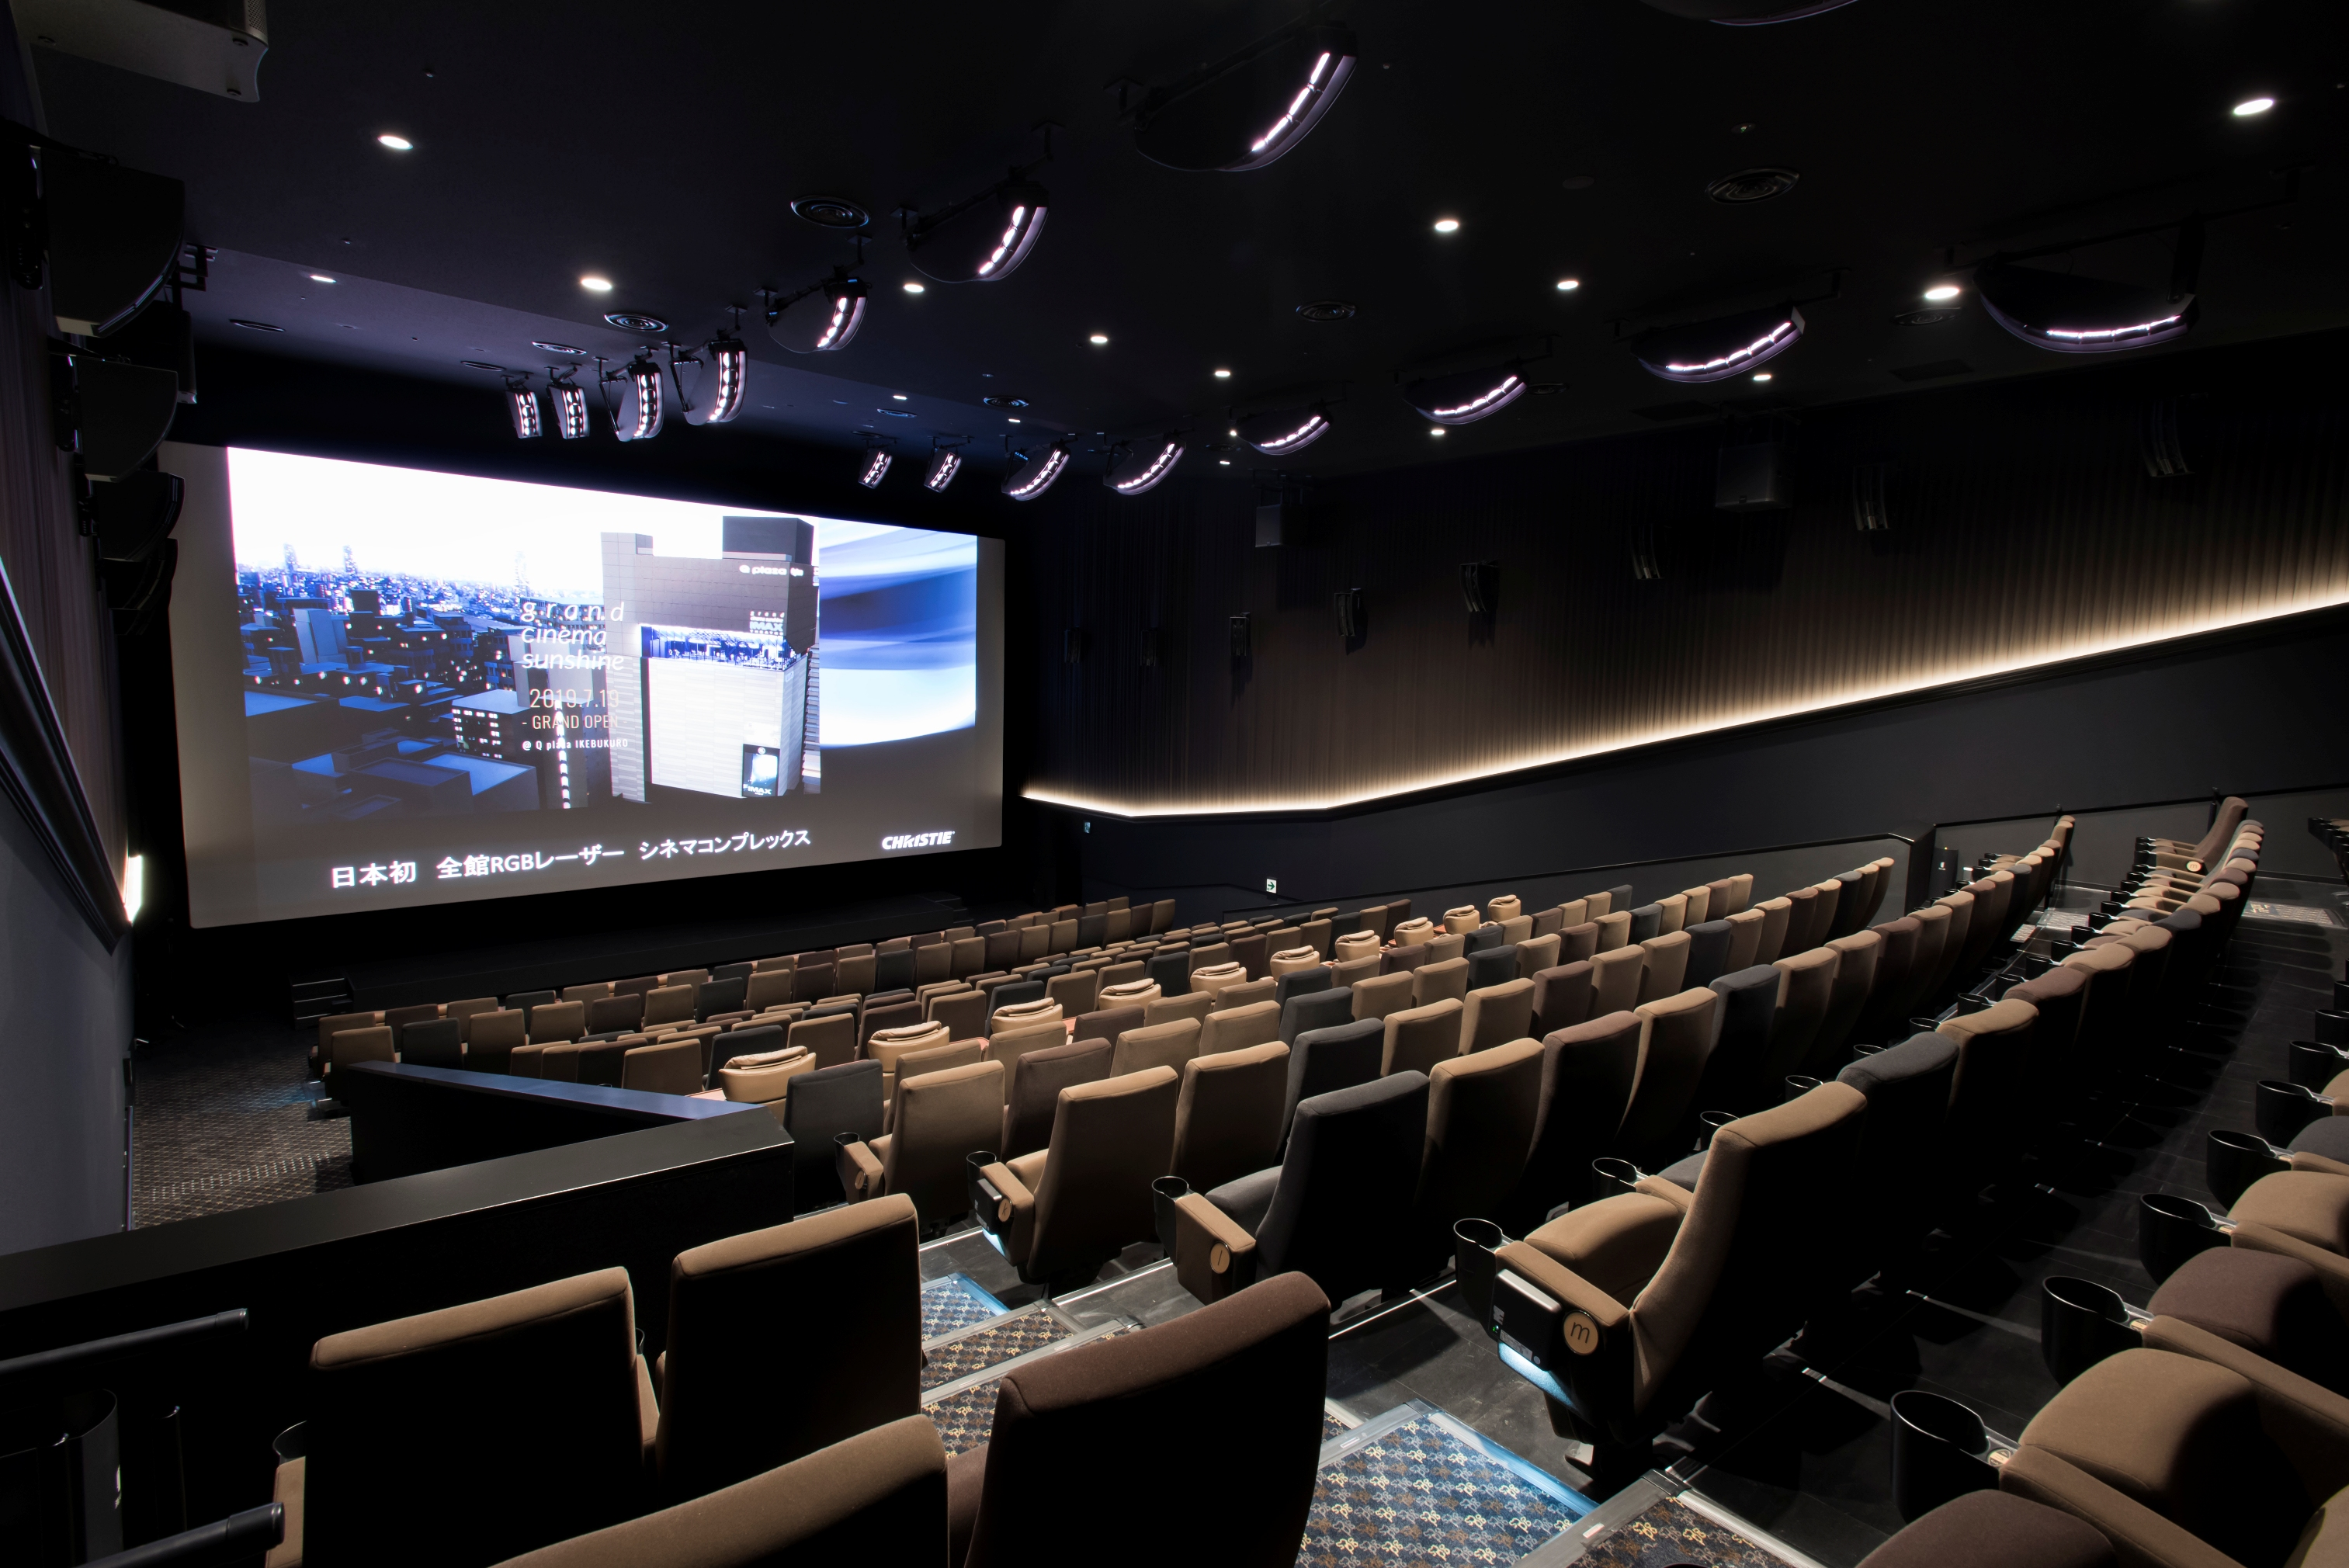 Cinema Sunshine Chooses Christie S Reallaser Family Of Rgb Laser Cinema Projectors And Vive Audio For Its New Flagship Multiplex In Tokyo Celluloid Junkie